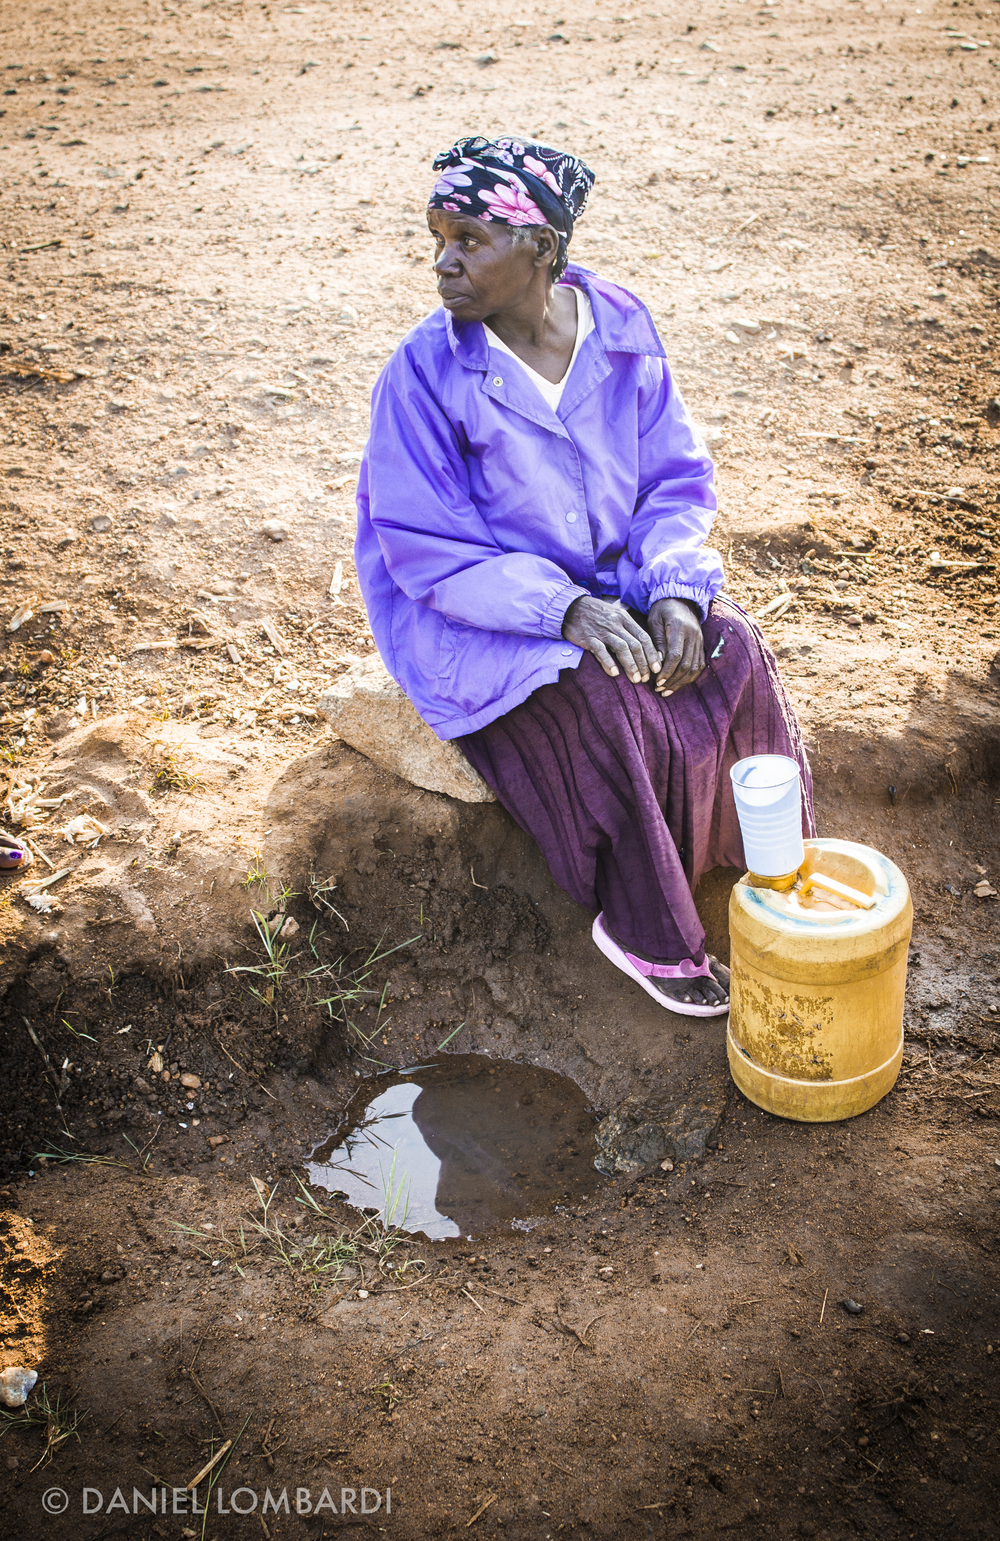 Far more water is swirled away with every flush of the toilet than is available at this watering hole. Cup by cup, Neta Bwonya, of Bisunu Village, provides a day's worth of water for her family. She will treat the water with chlorine and then use it for drinking, cooking, and cleaning.